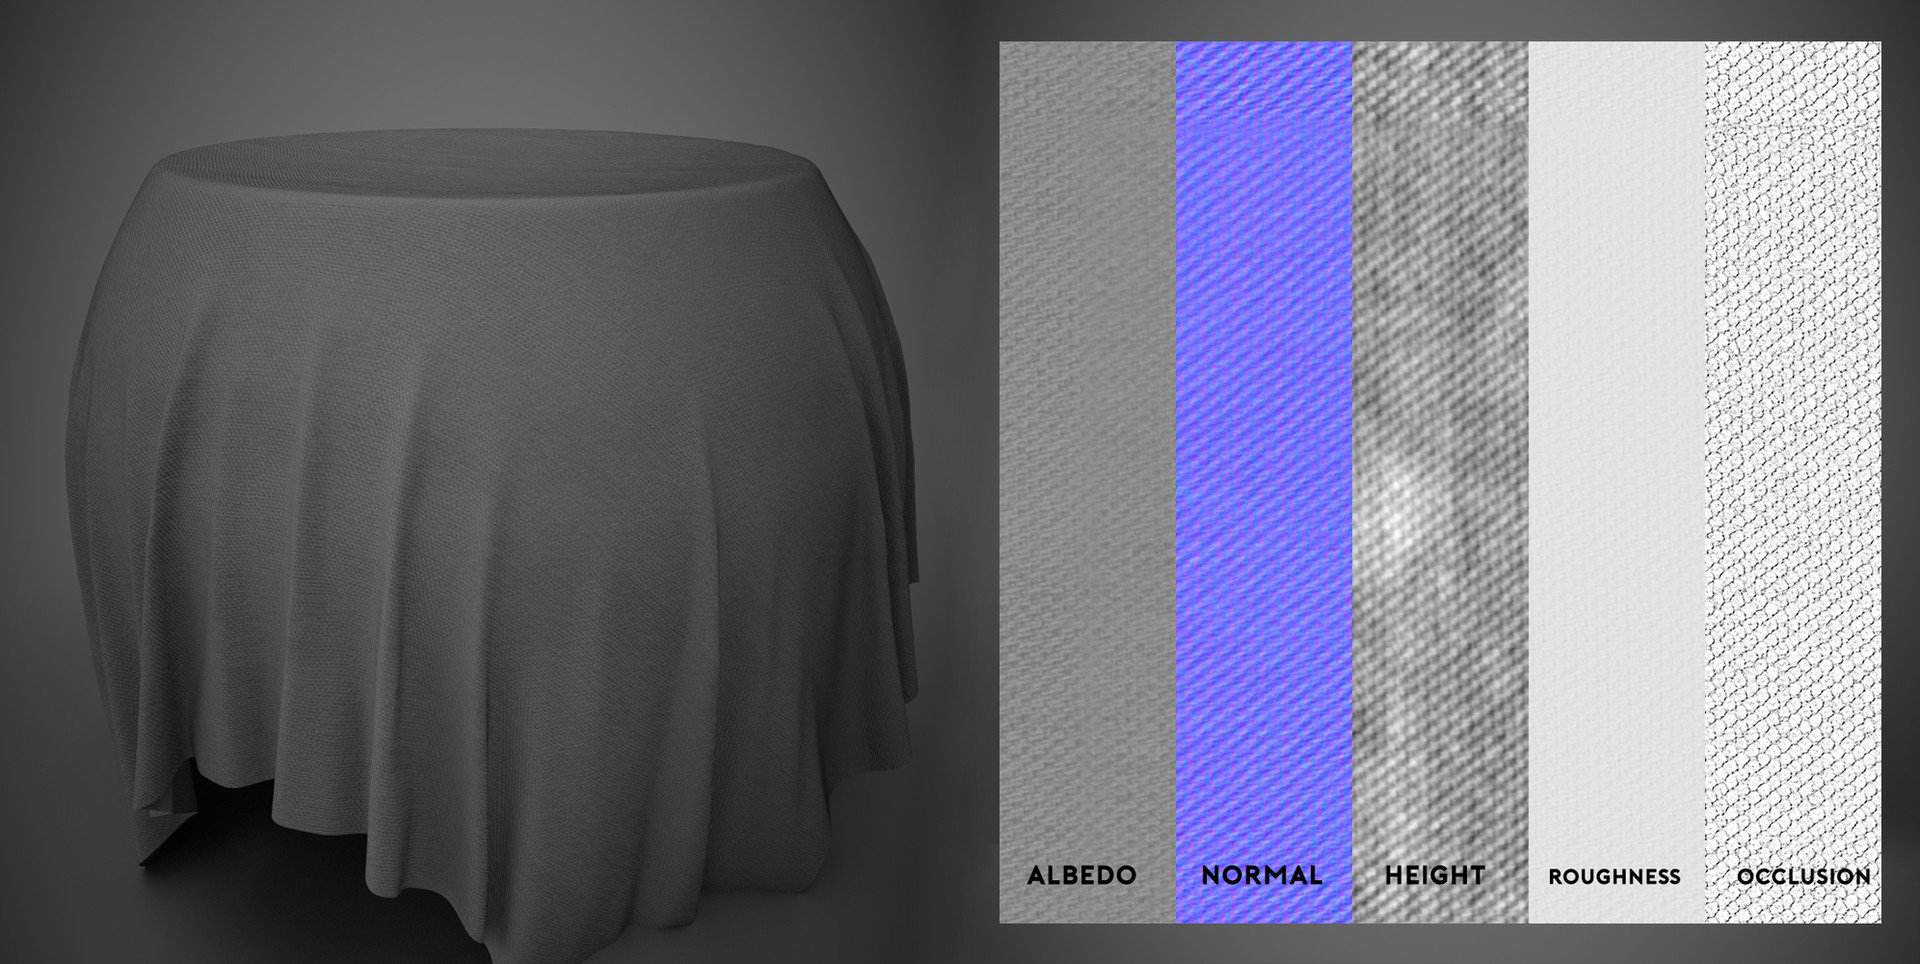 Grain Fabric - Substance Material Scan